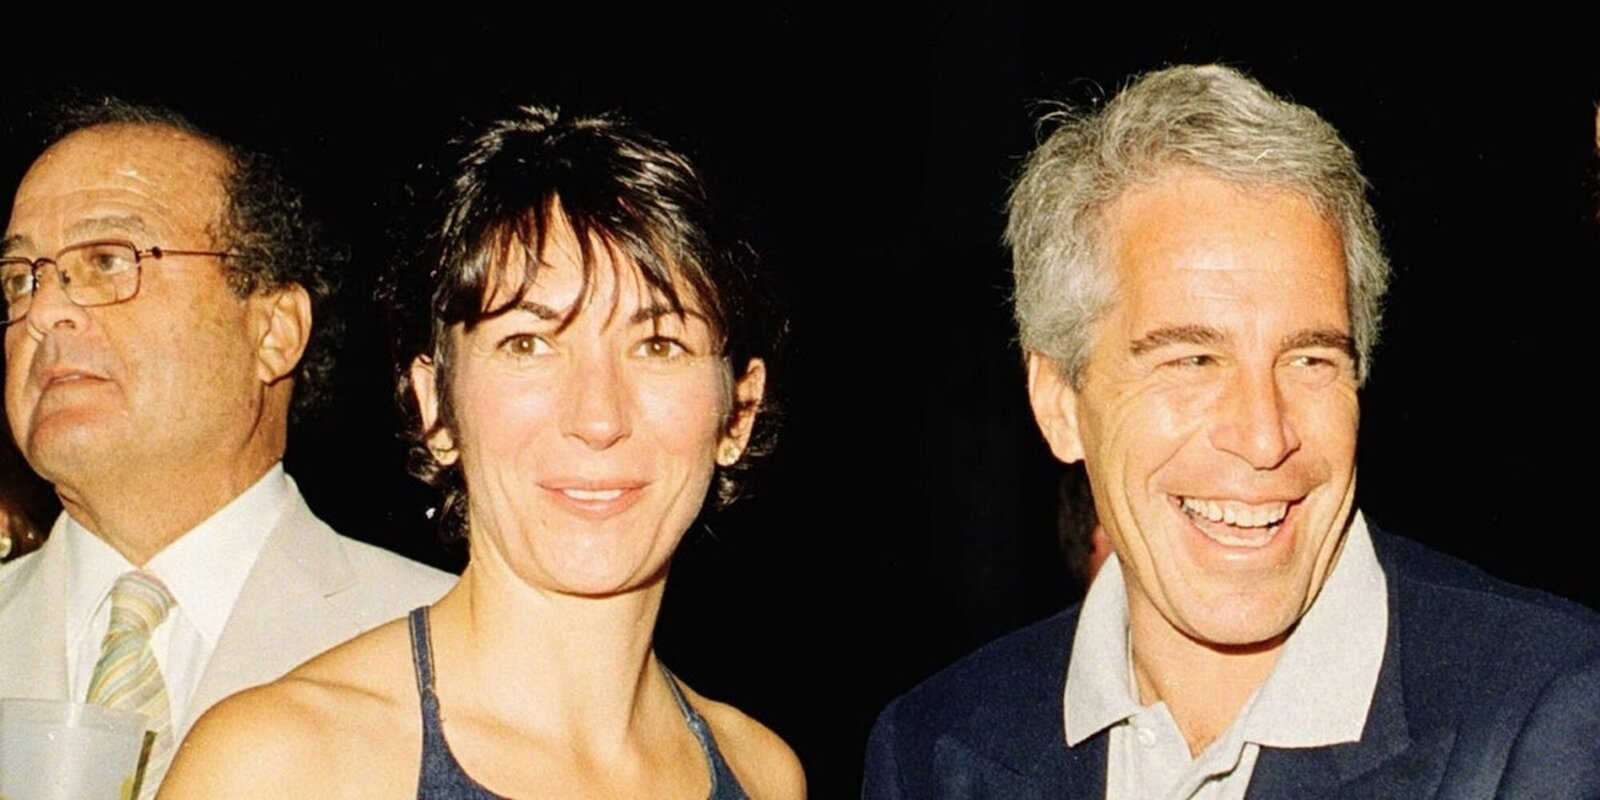 As Ghislaine Maxwell awaits her 2021 trial, evidence is slowly but surely coming out about her activities with Jeffrey Epstein. Can they prove her guilty?